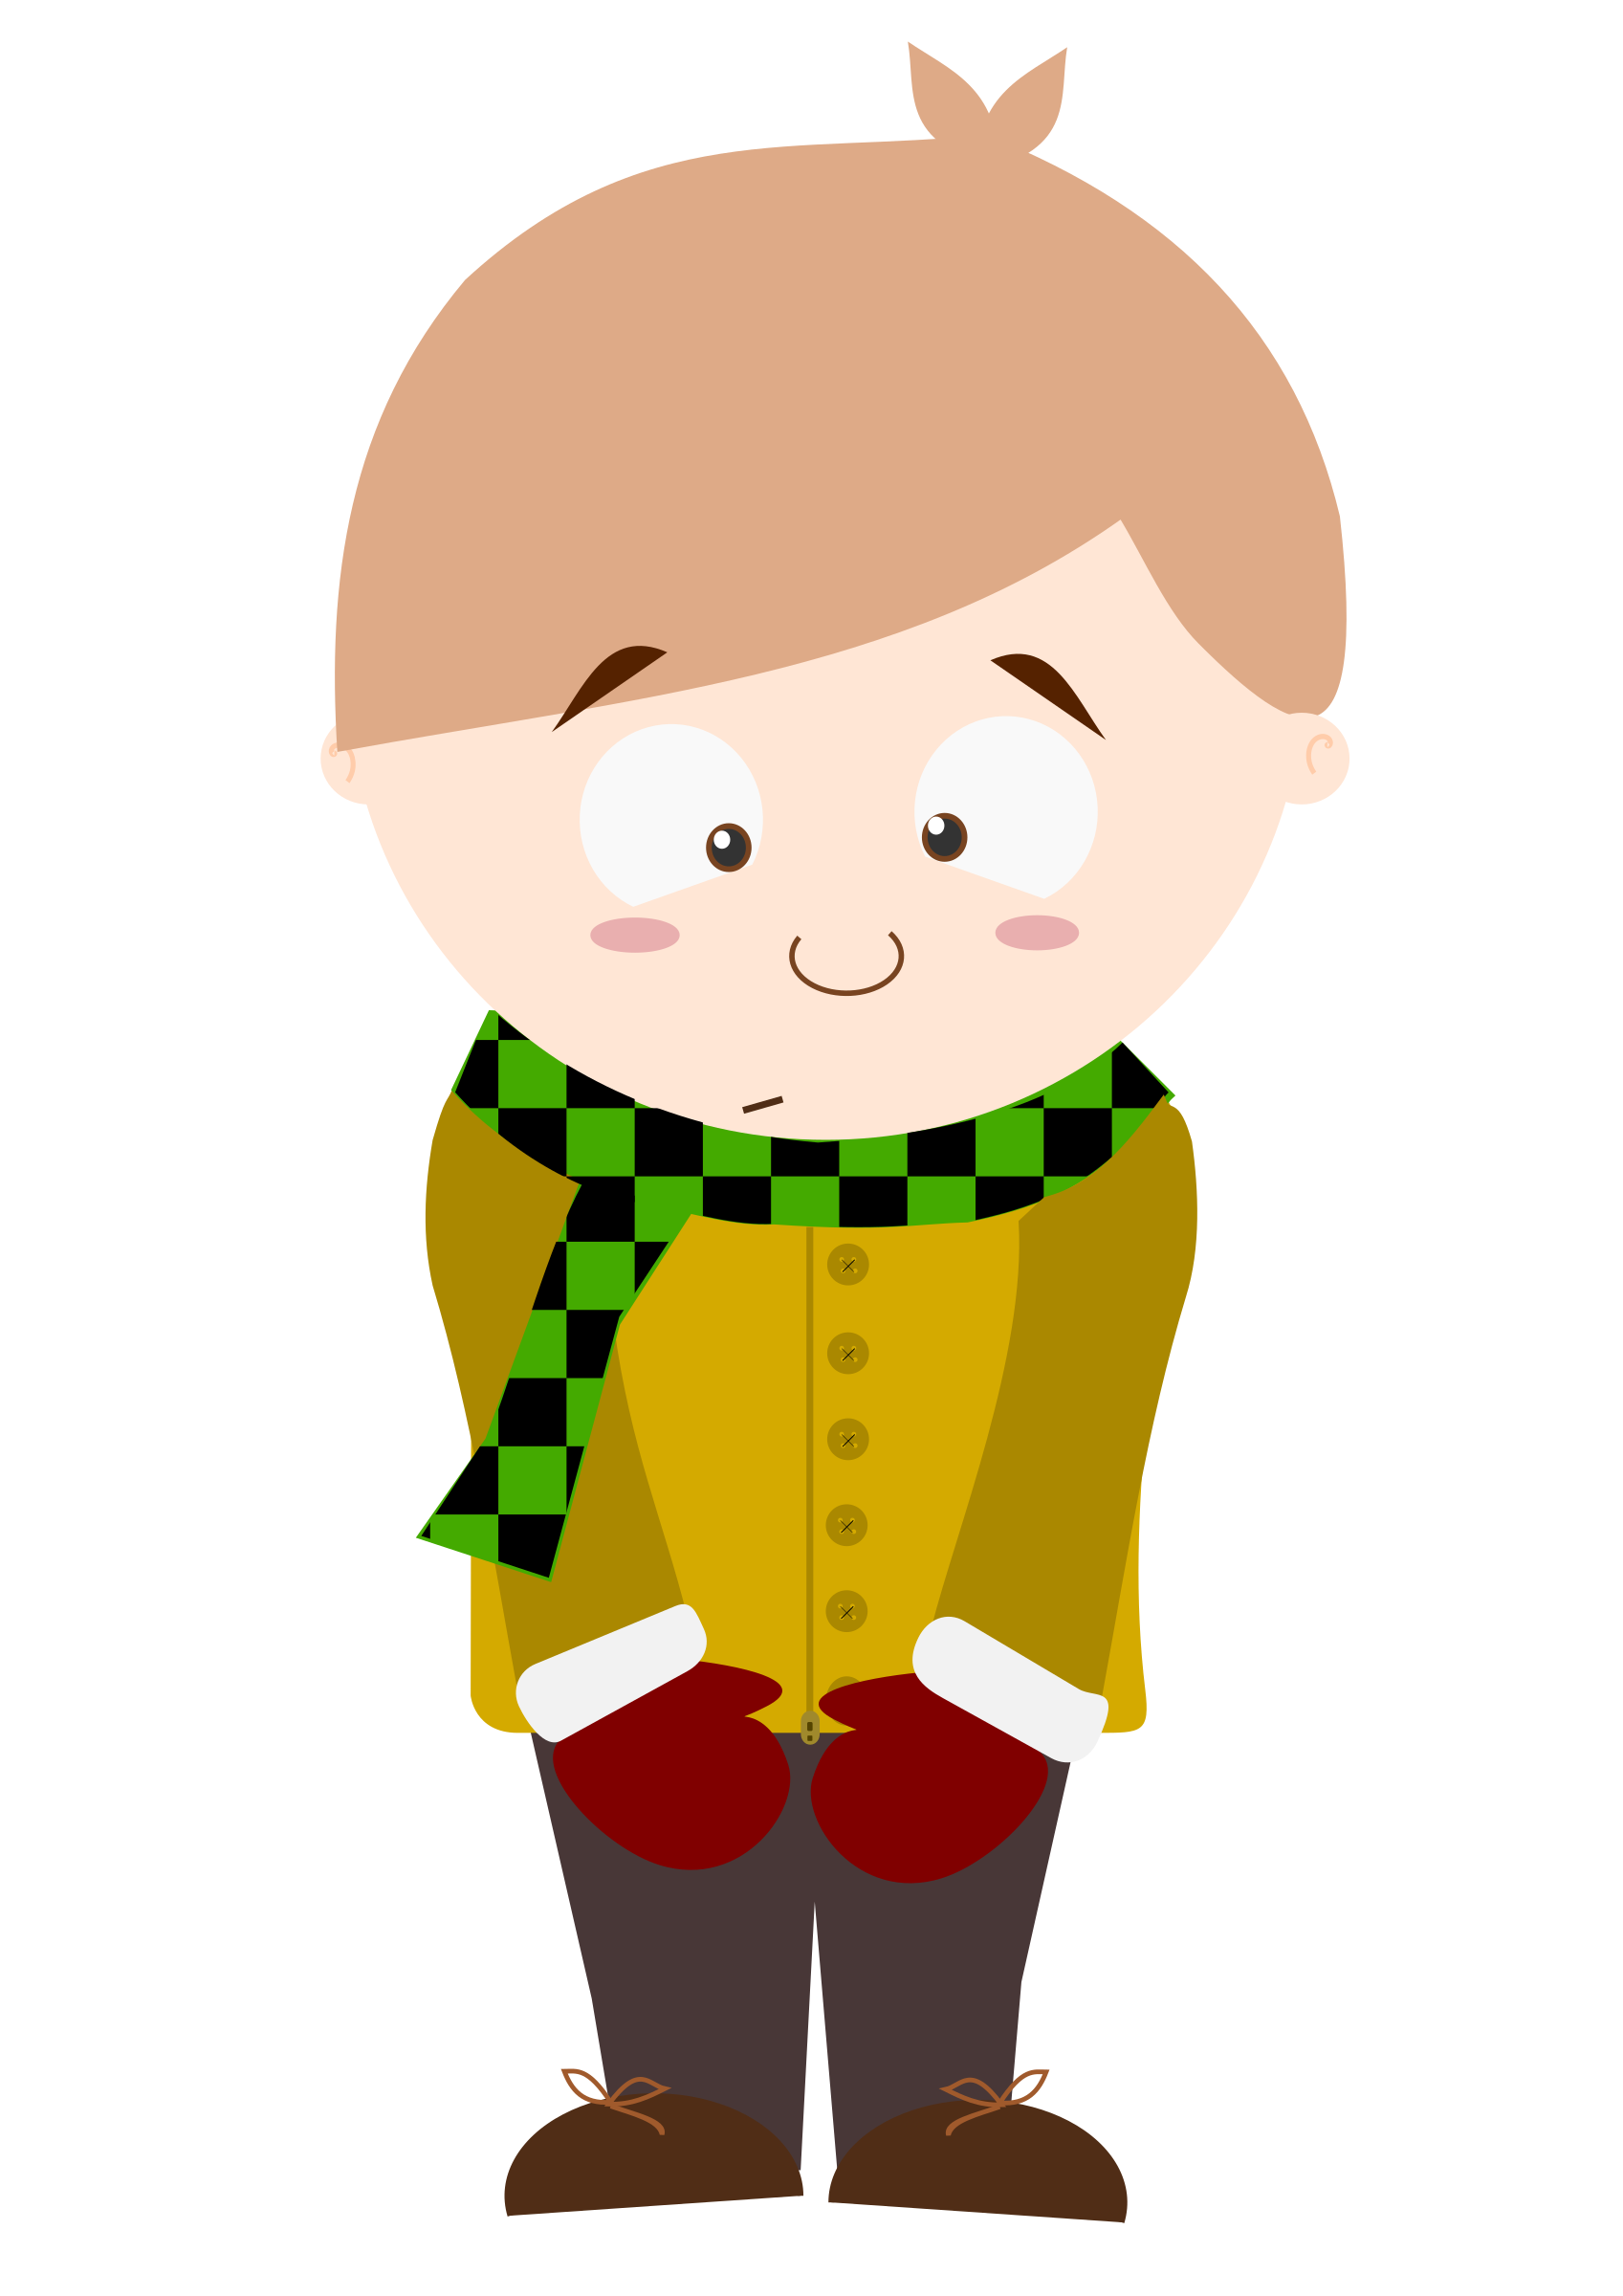 Cartoon kid big image. Shy clipart shy child